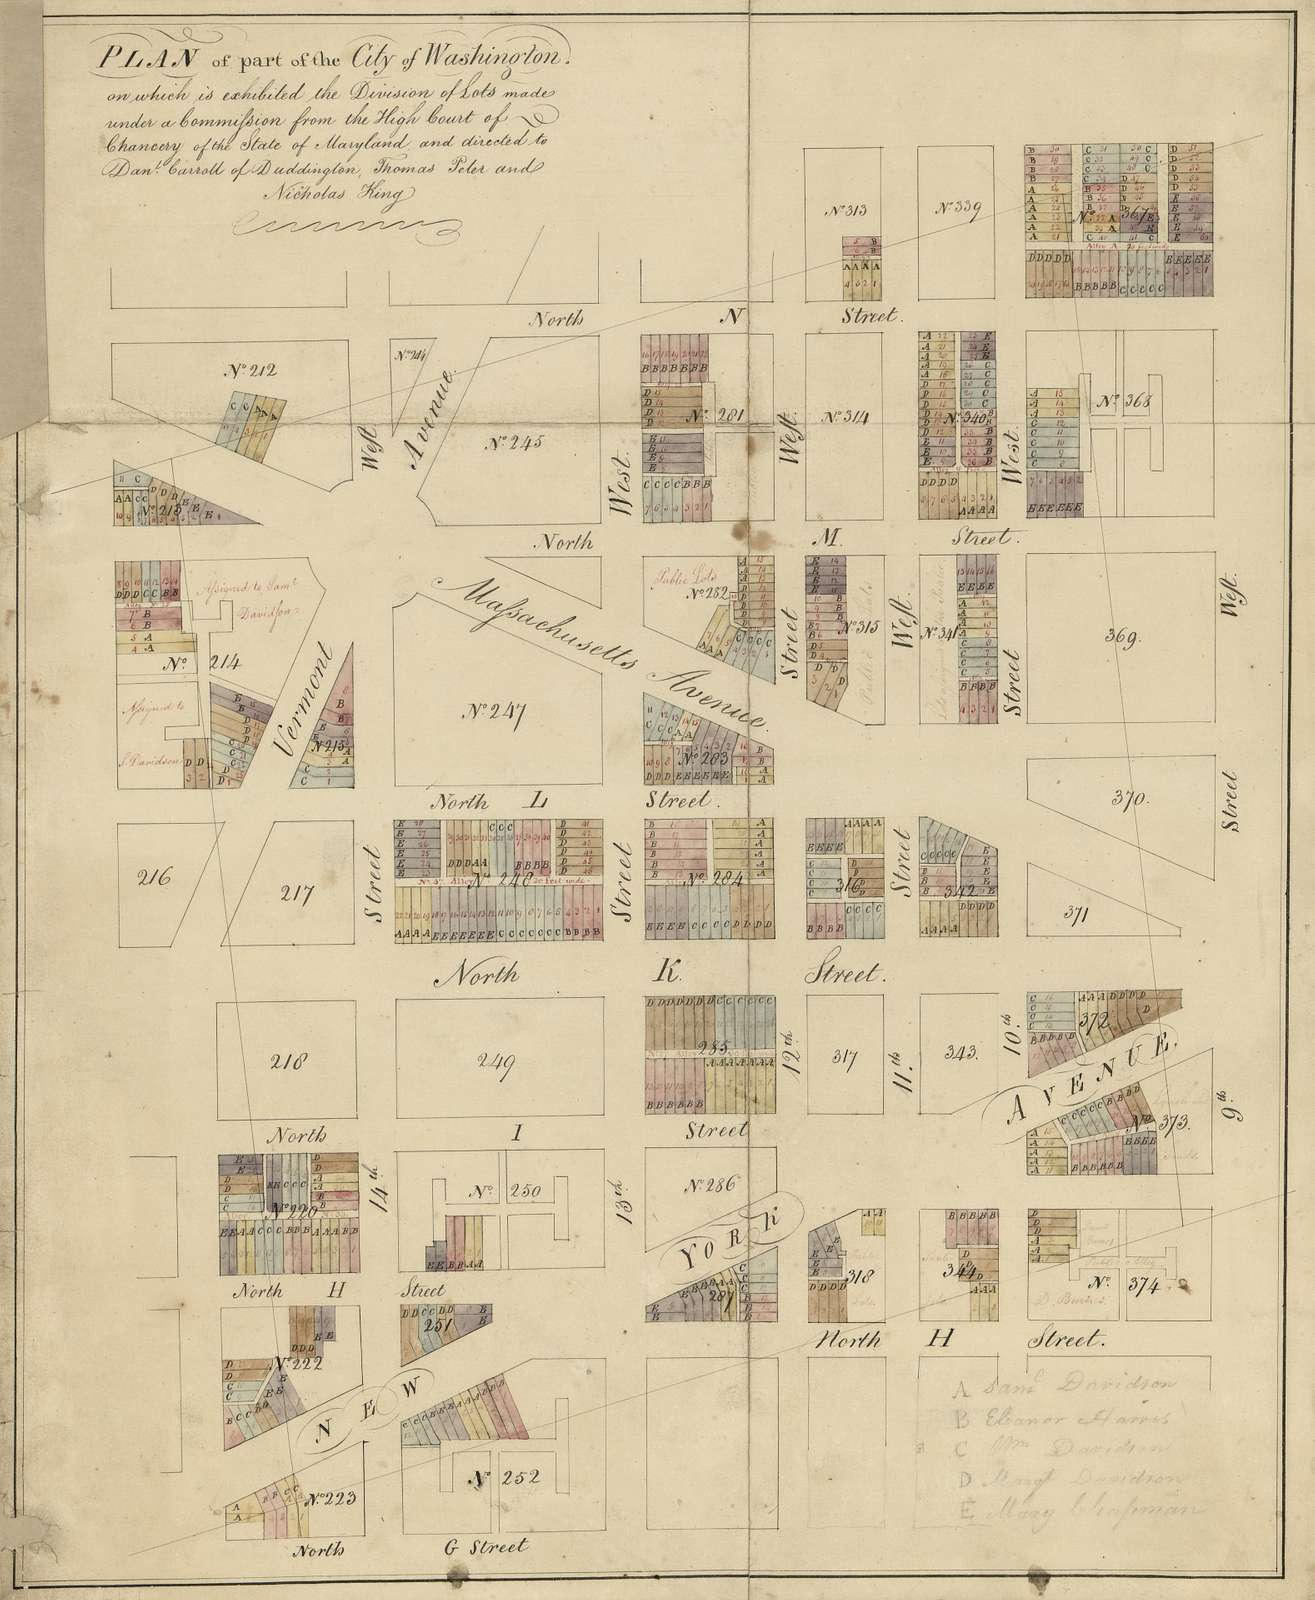 Plan of part of the city of Washington on which is exhibited the division of lots : made under a commission from the High Court of Chancery of the state of Maryland and directed to Dan'l Carroll of Duddington, Thomas Peter, and Nicholas King.